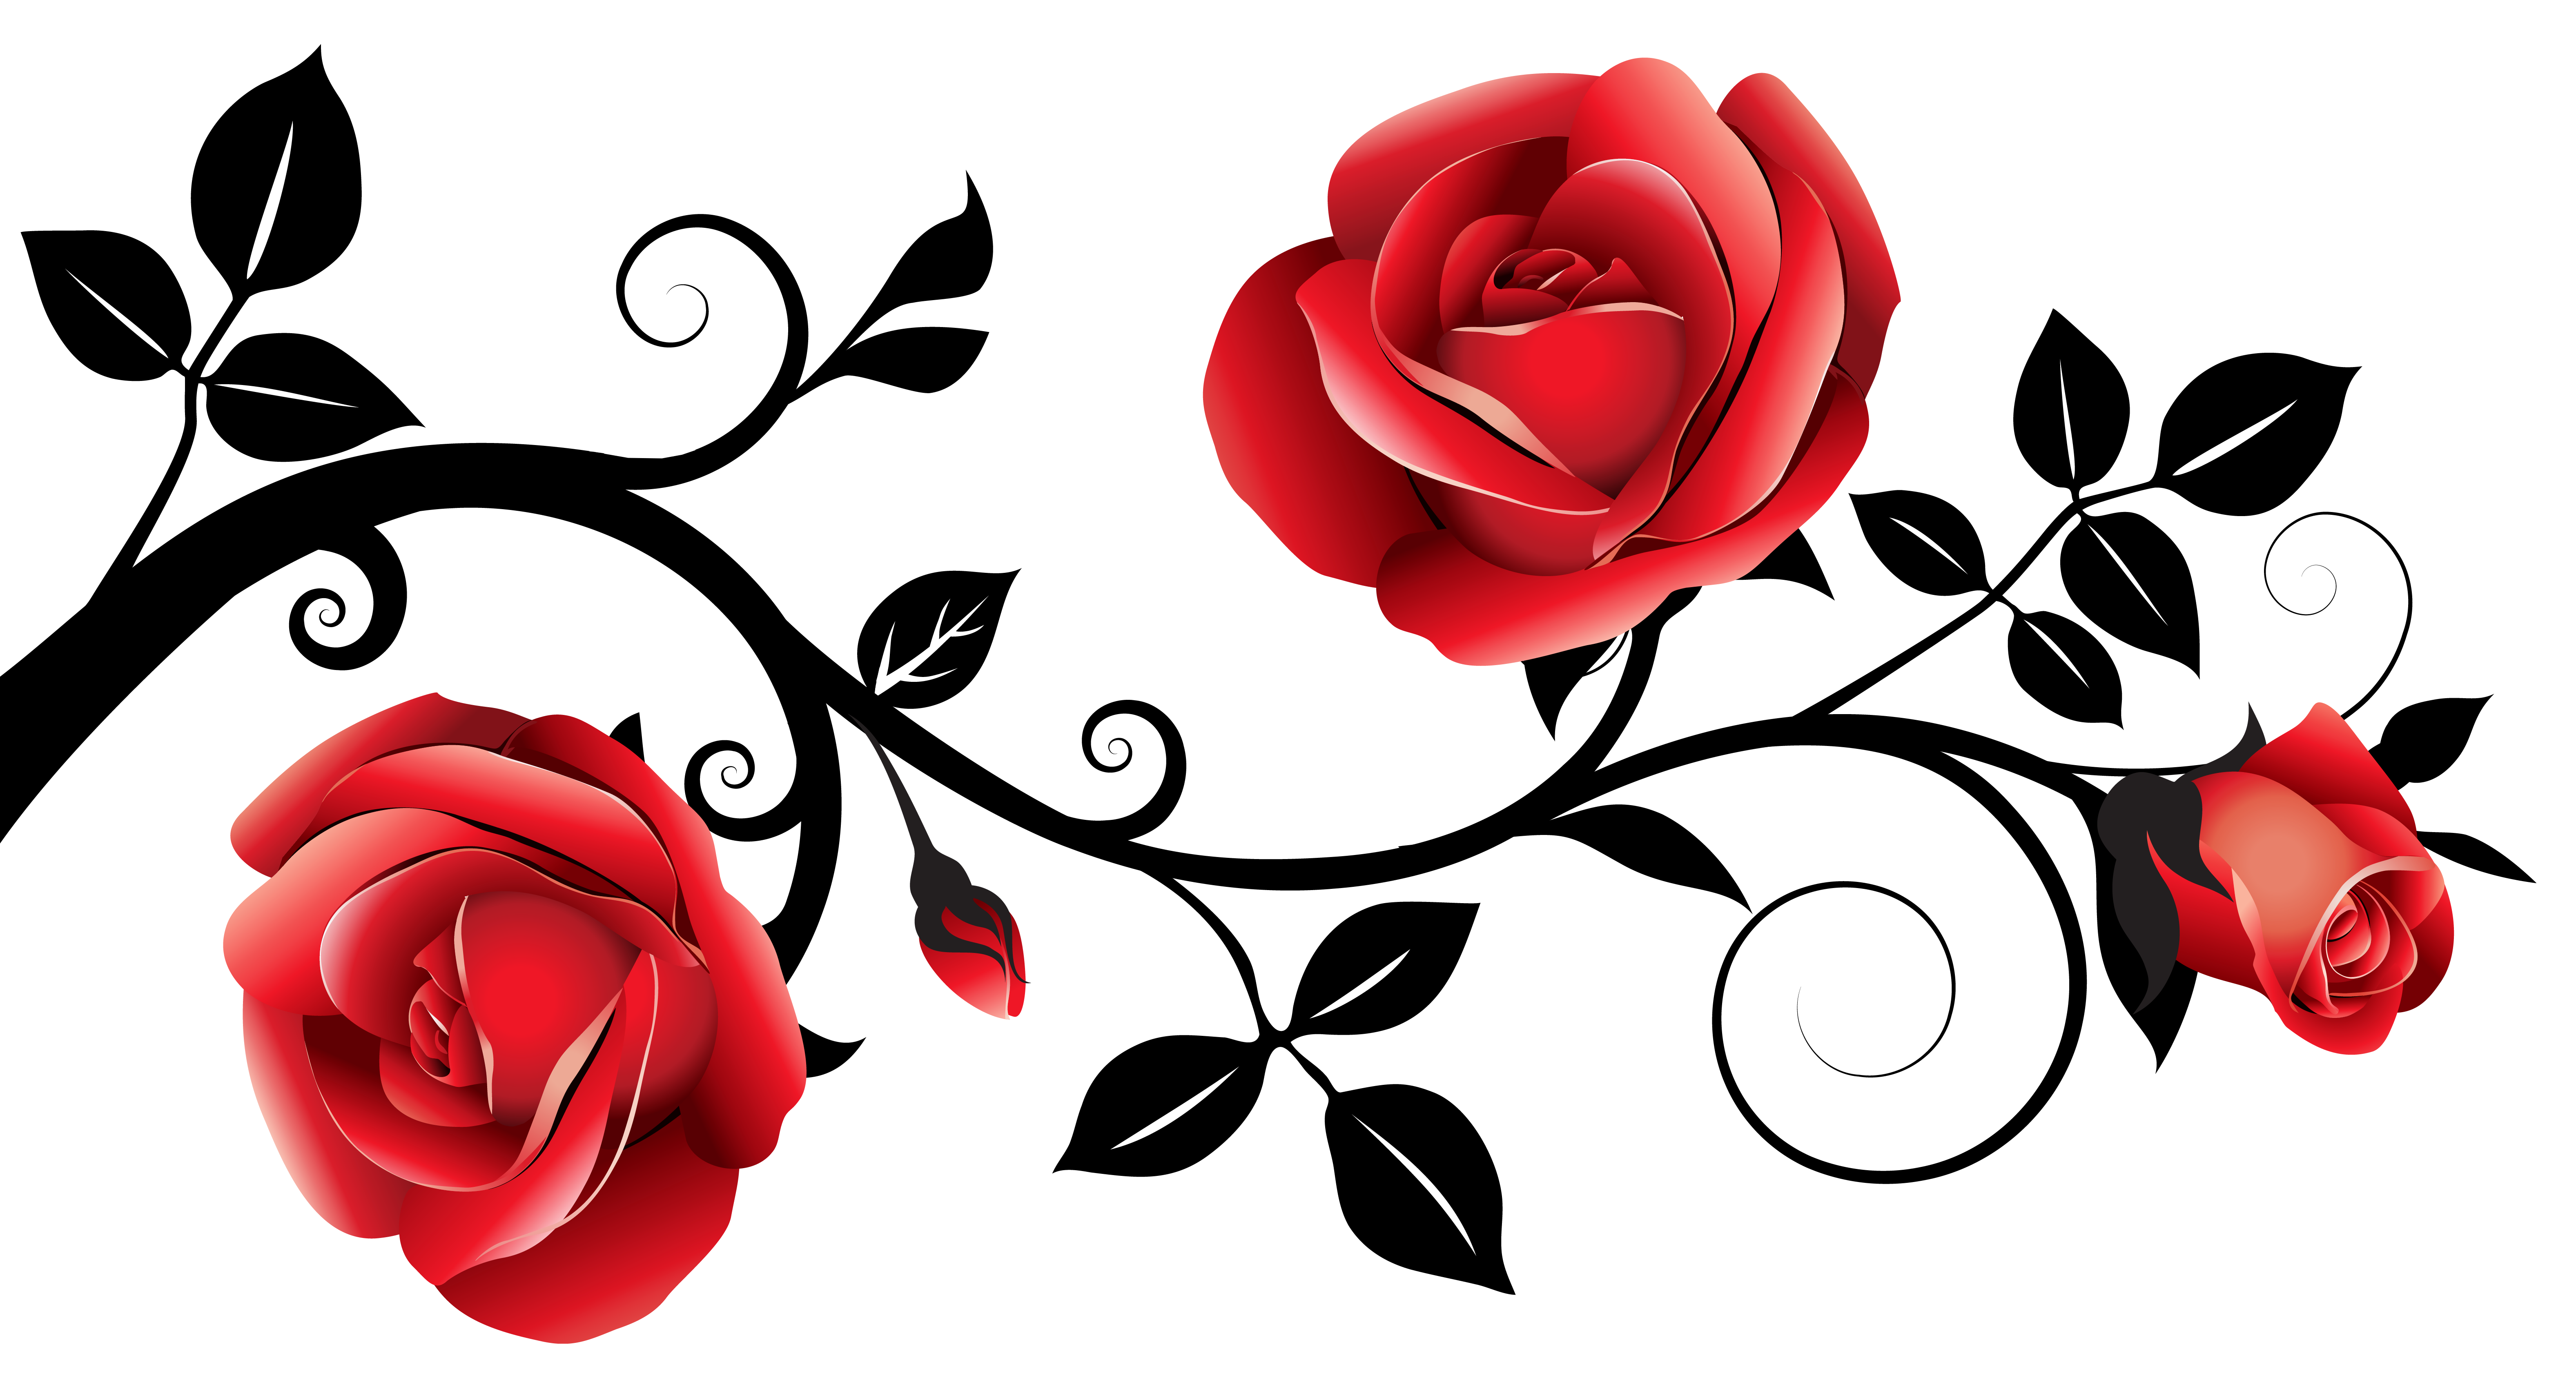 Black roses png. Red and decorative clipart